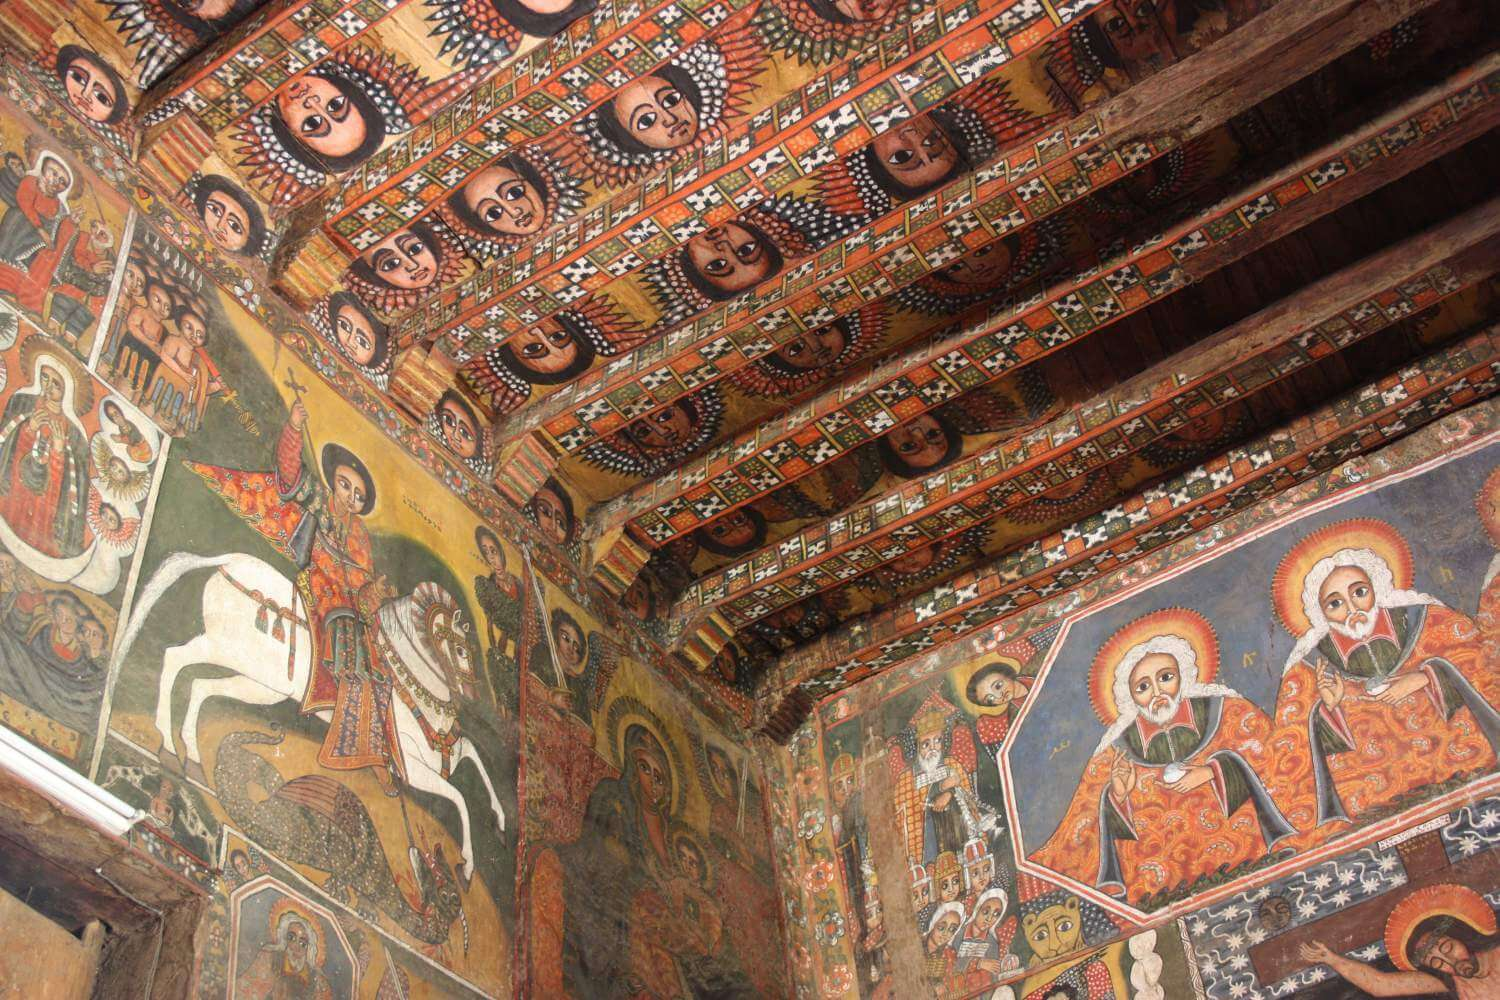 Frescoes in Debre Berhan Selassie church, Gondar